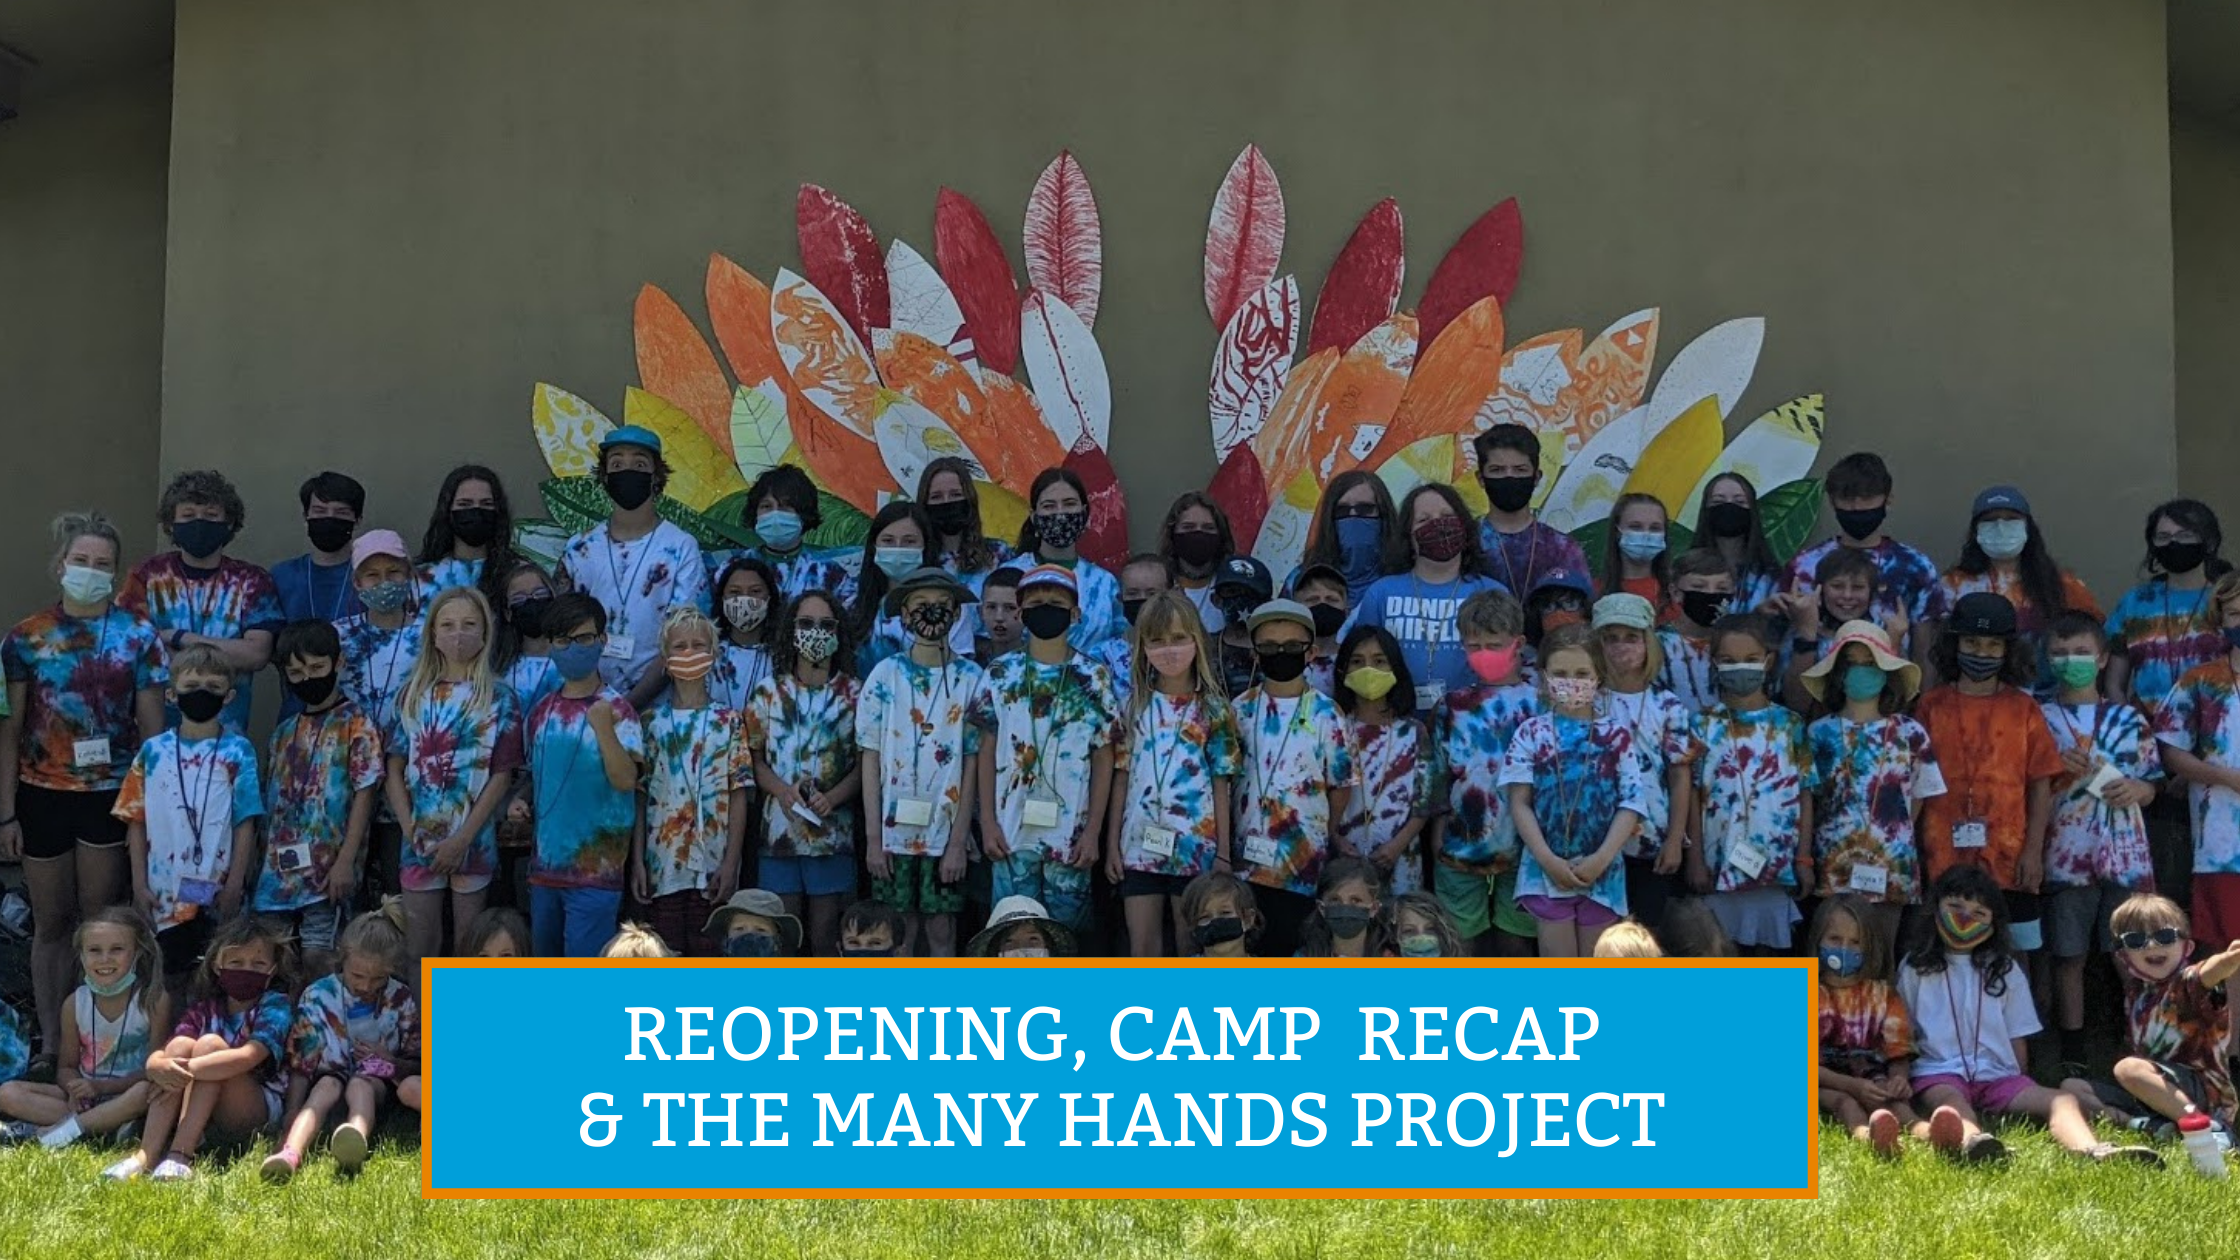 Reopening, Camp Recap & The Many Hands Project